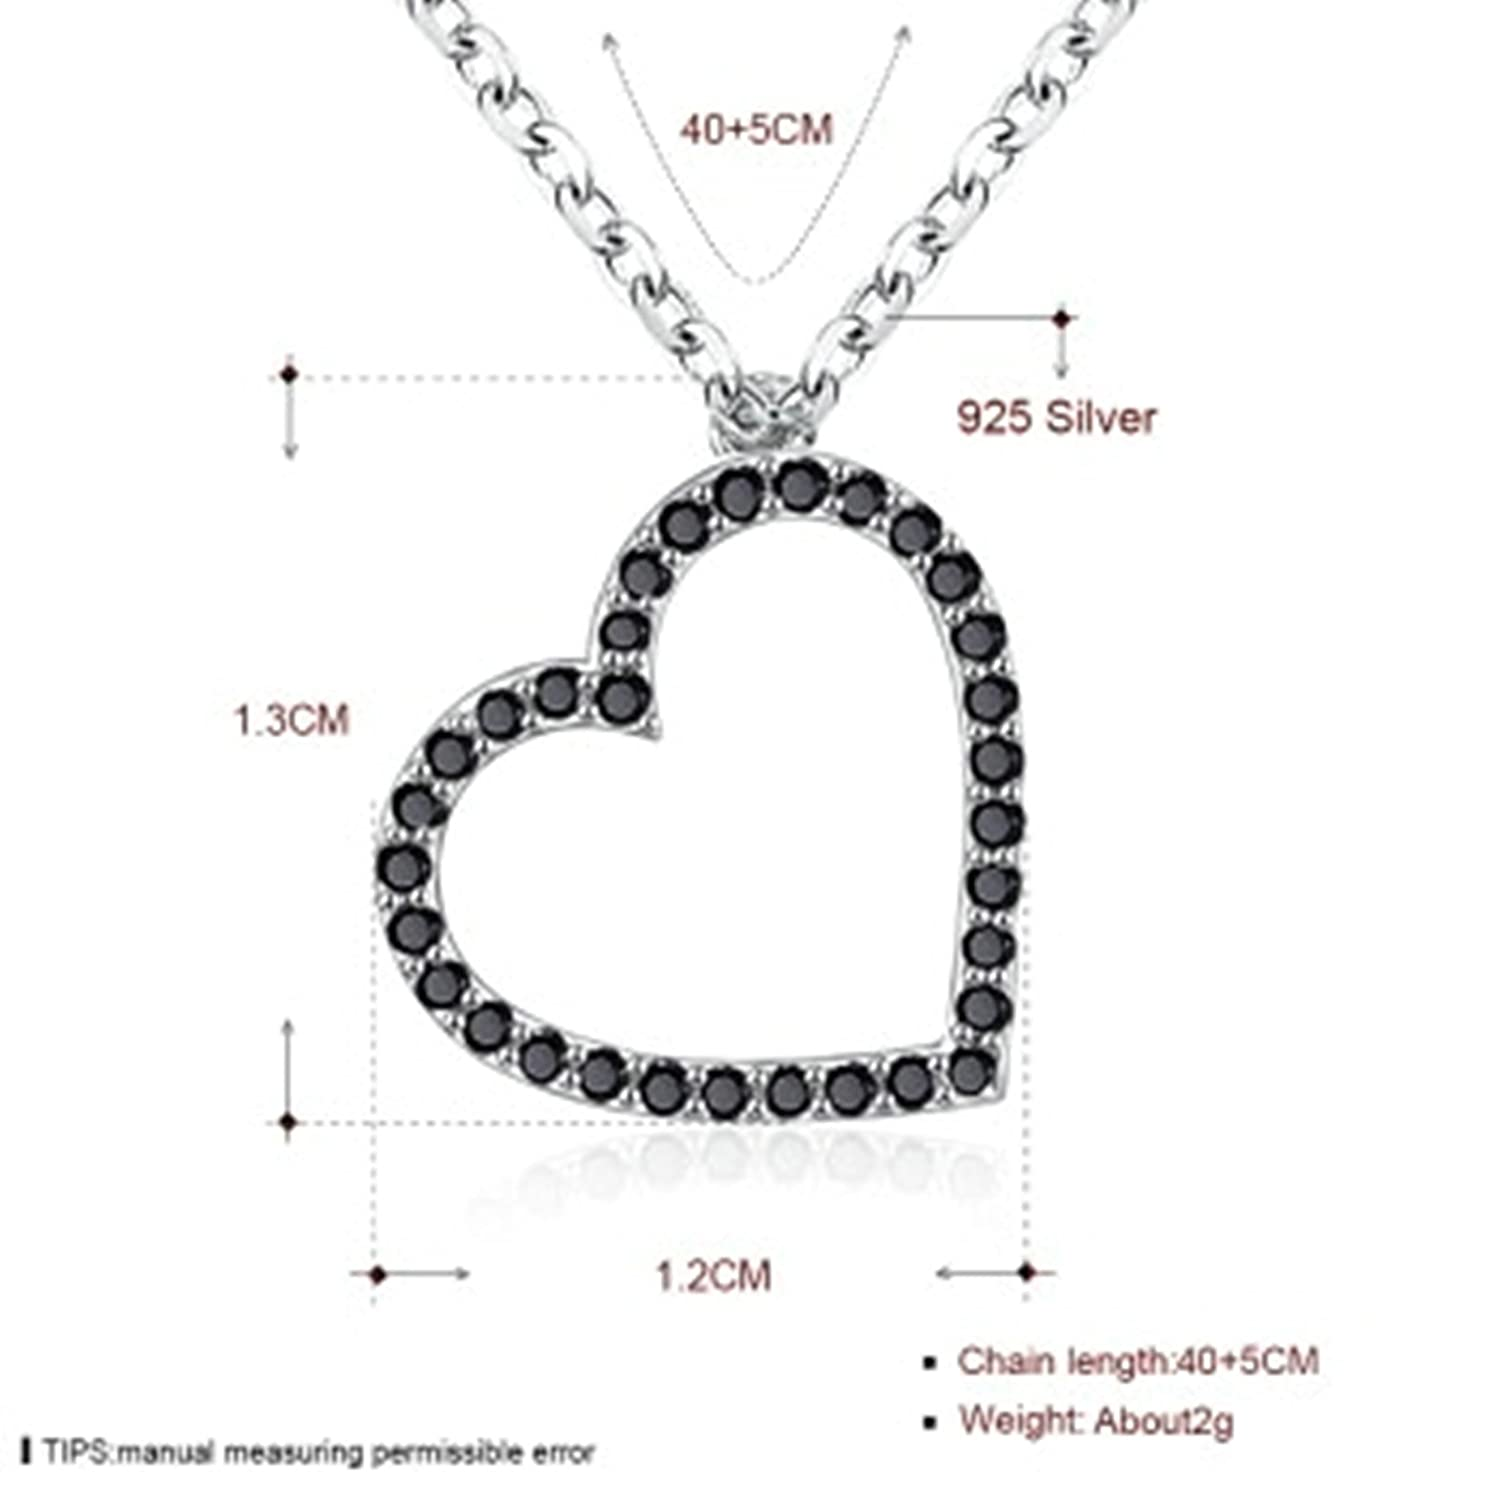 MoAndy S925 Sterling Silver Necklace Pendant for Women Heart Love Cubic Zirconia